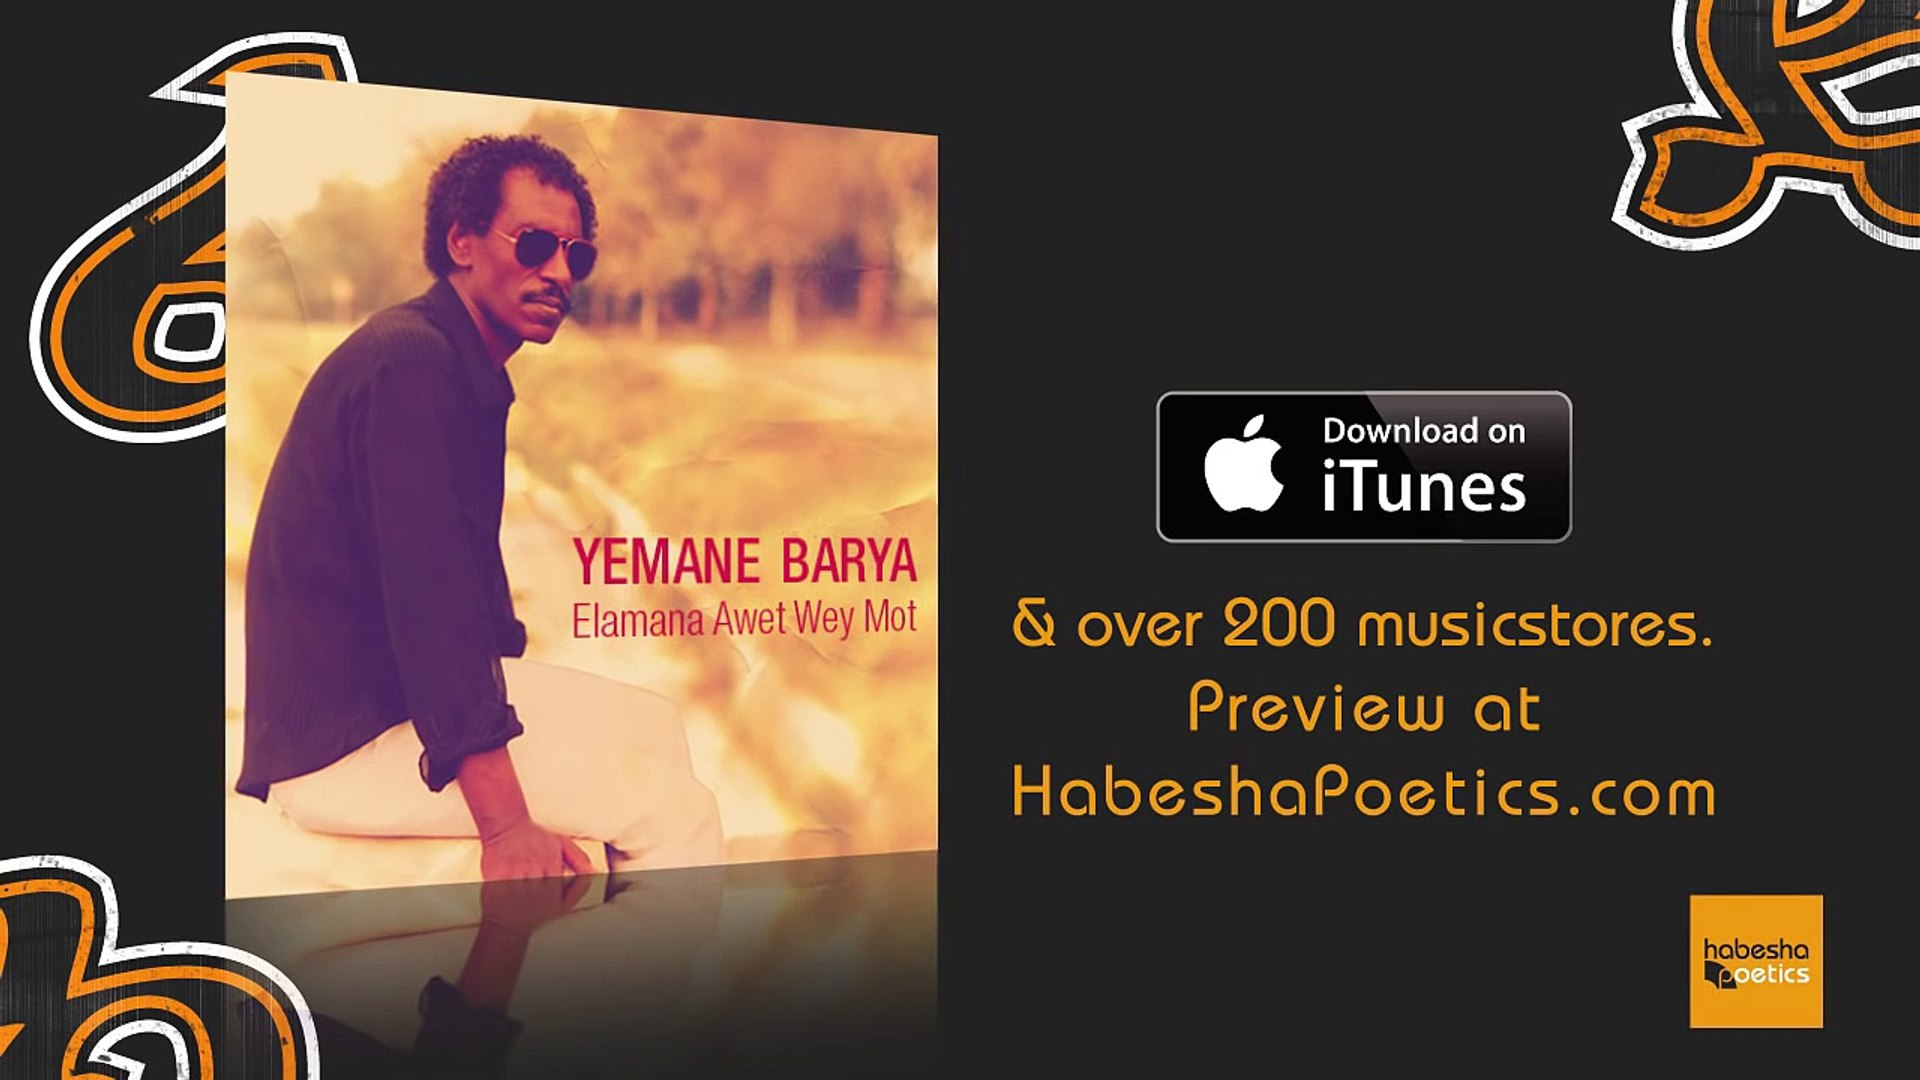 Eritrea - Yemane Barya - Meriruna Sidet - (Official Audio Video) - New  Eritrean Music